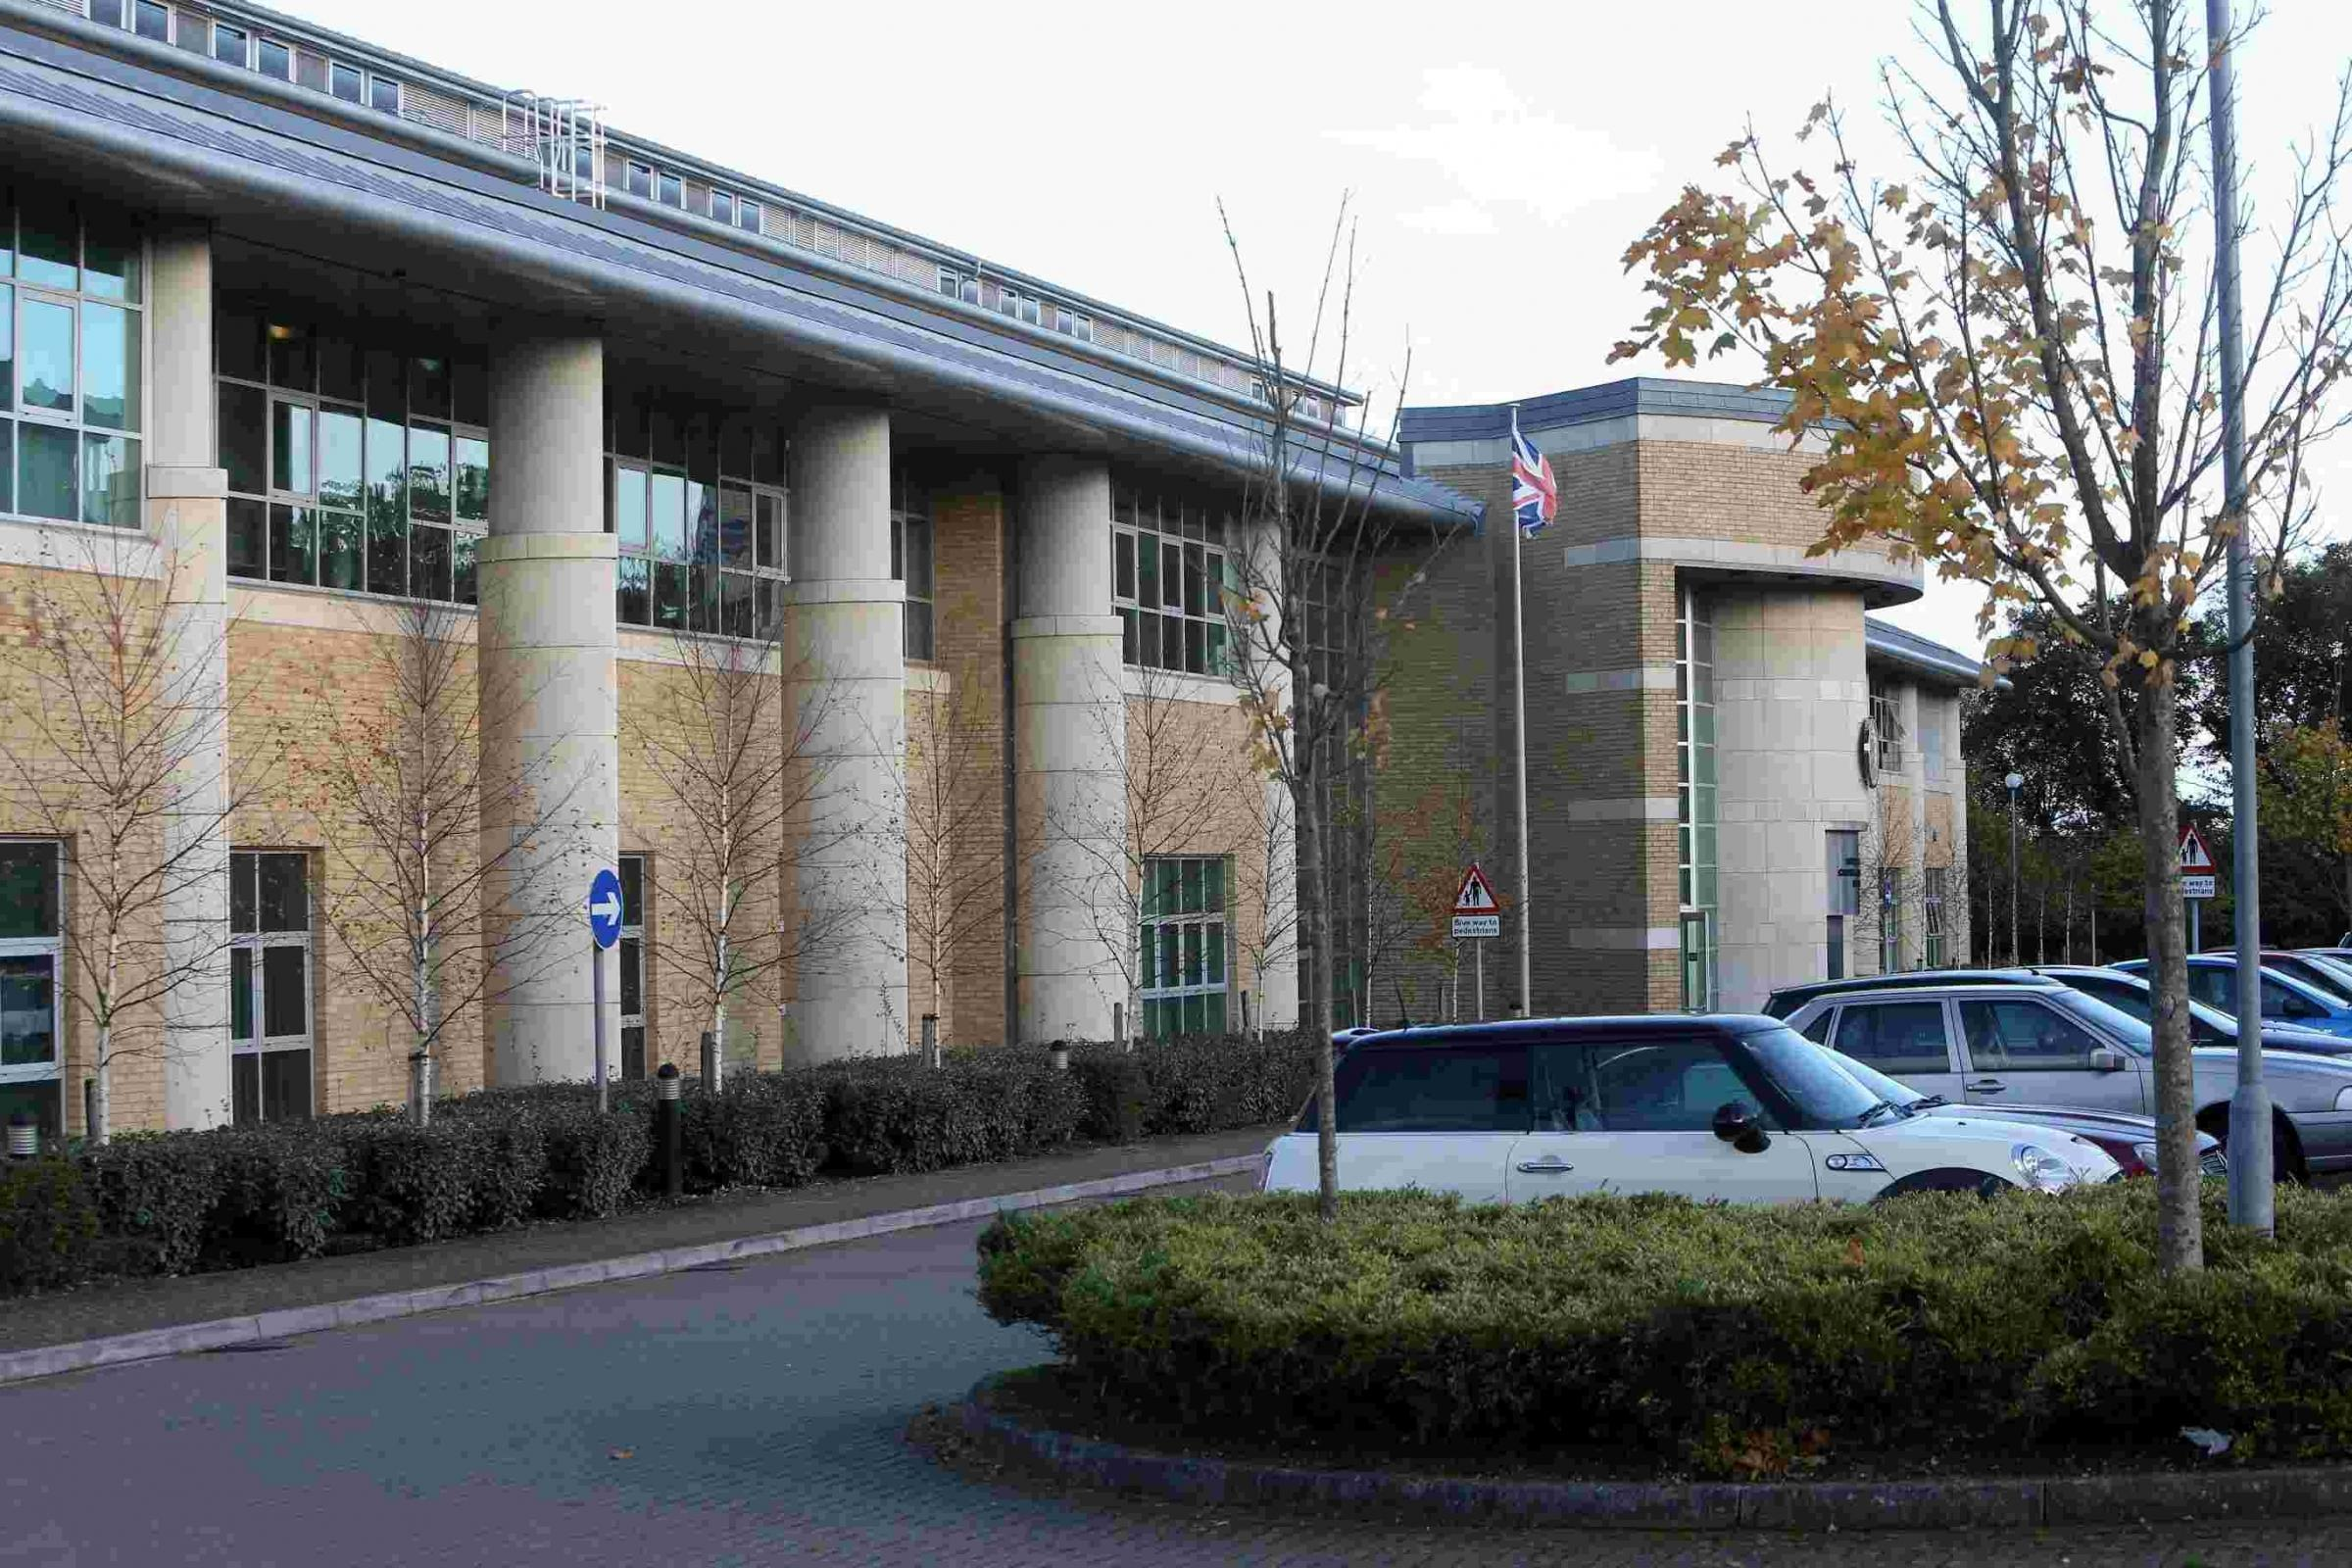 The case was heard at the family court in Bournemouth